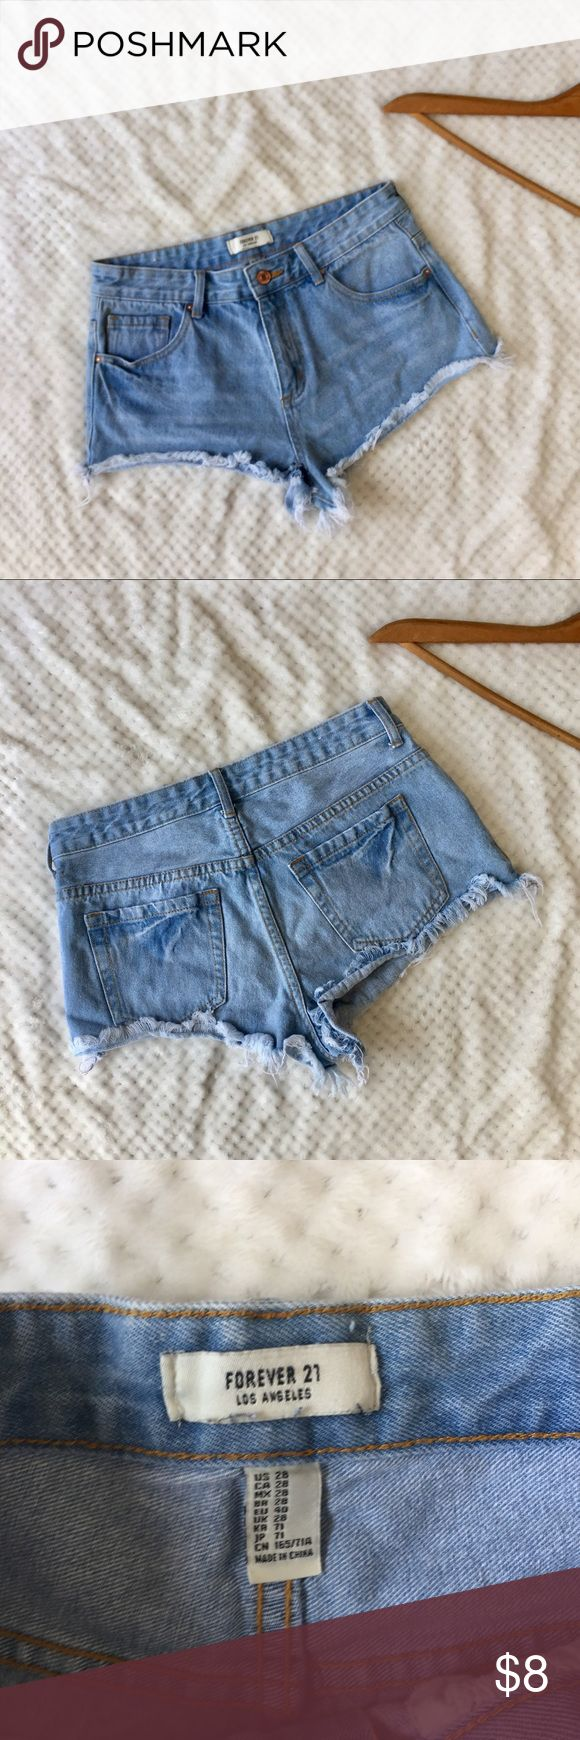 """Forever 21 Light Washed Denim Cutoffs Size 28 F21 LIGHT WASHED DENIM CUTOFF SHORTS  SIZE 28  MEASUREMENTS :  WAIST : 14"""" RISE 6"""" Forever 21 Shorts Jean Shorts"""